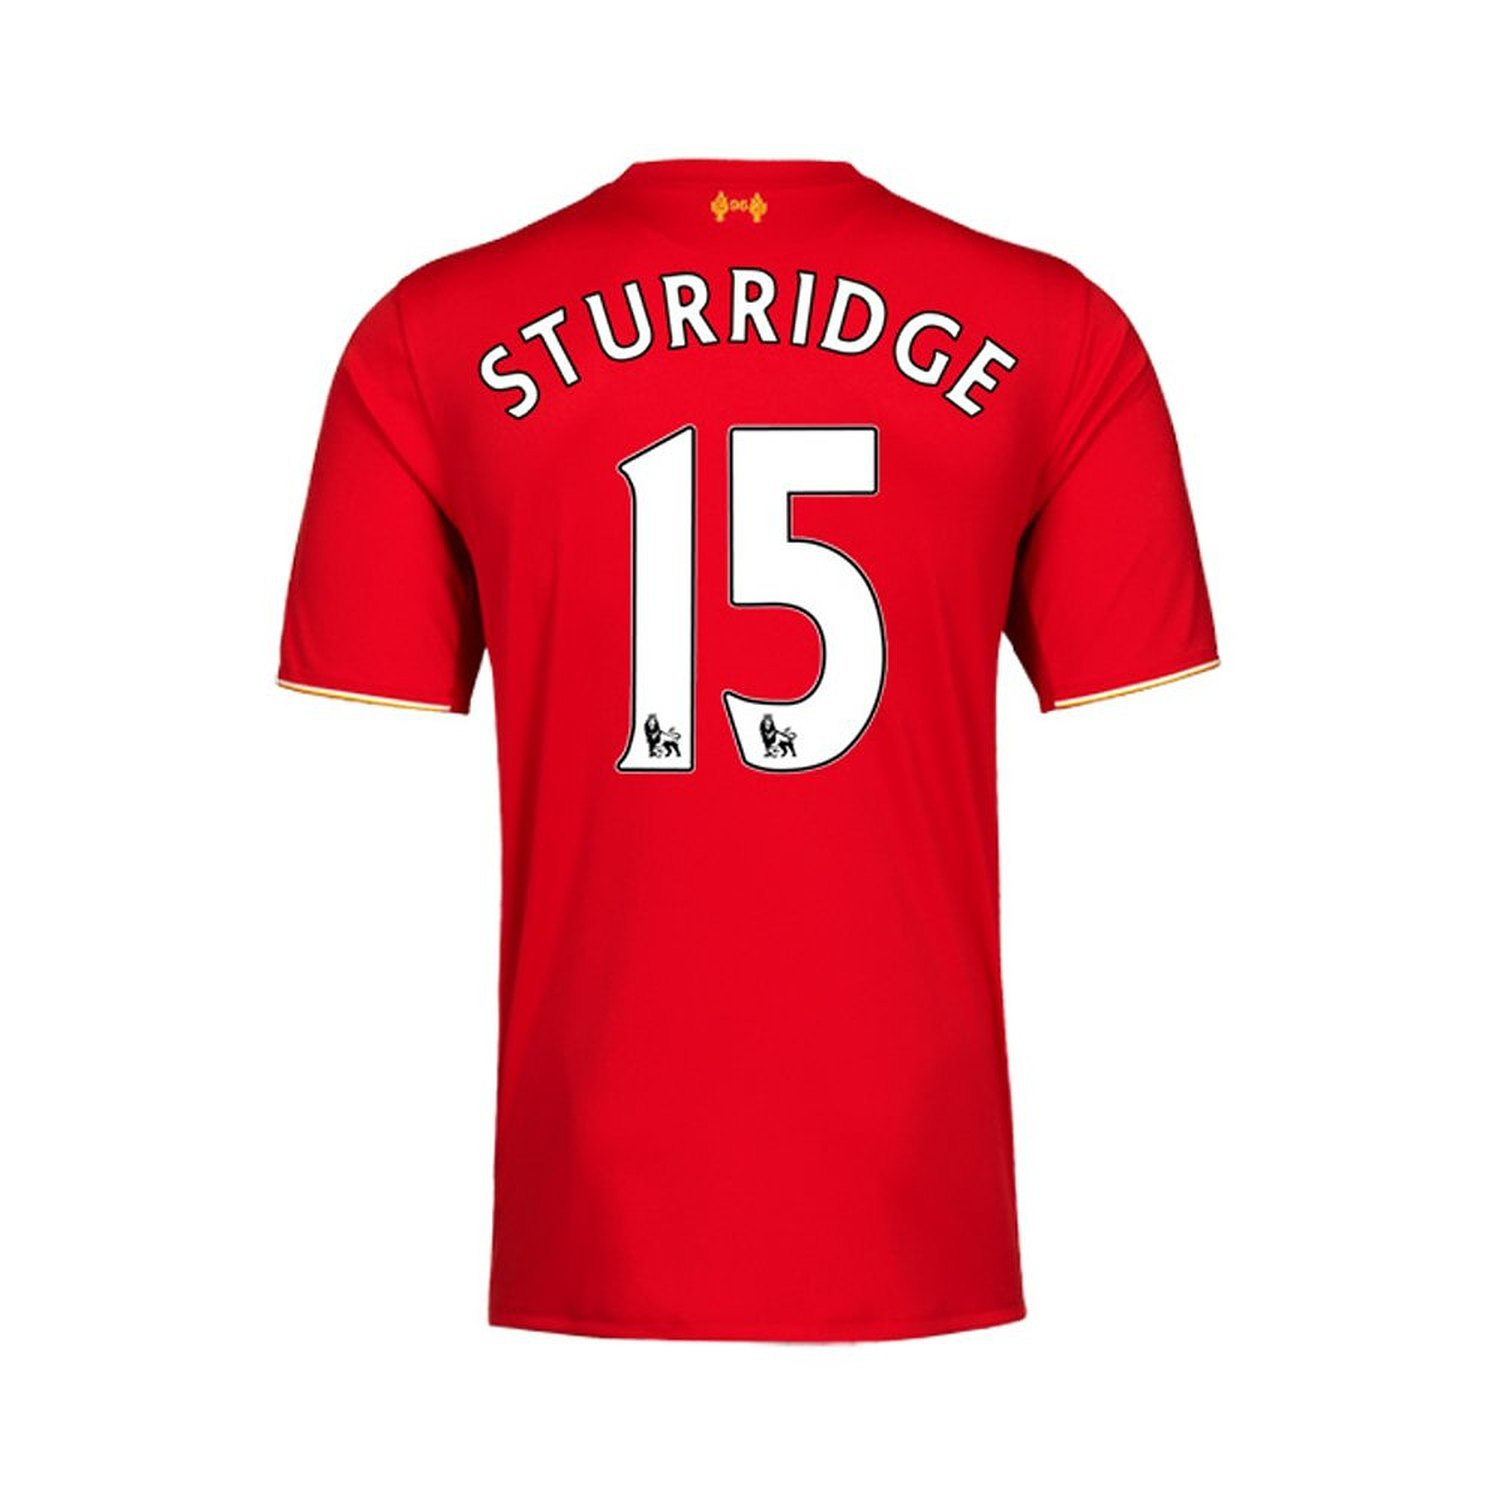 New Balance Sturridge #15 Liverpool Home Soccer Jersey 2015(Authentic name and number of player)/サッカーユニフォーム リヴァプールFC ホーム用 スタリッジ 背番号15 2015 B013TK2OAG   XL